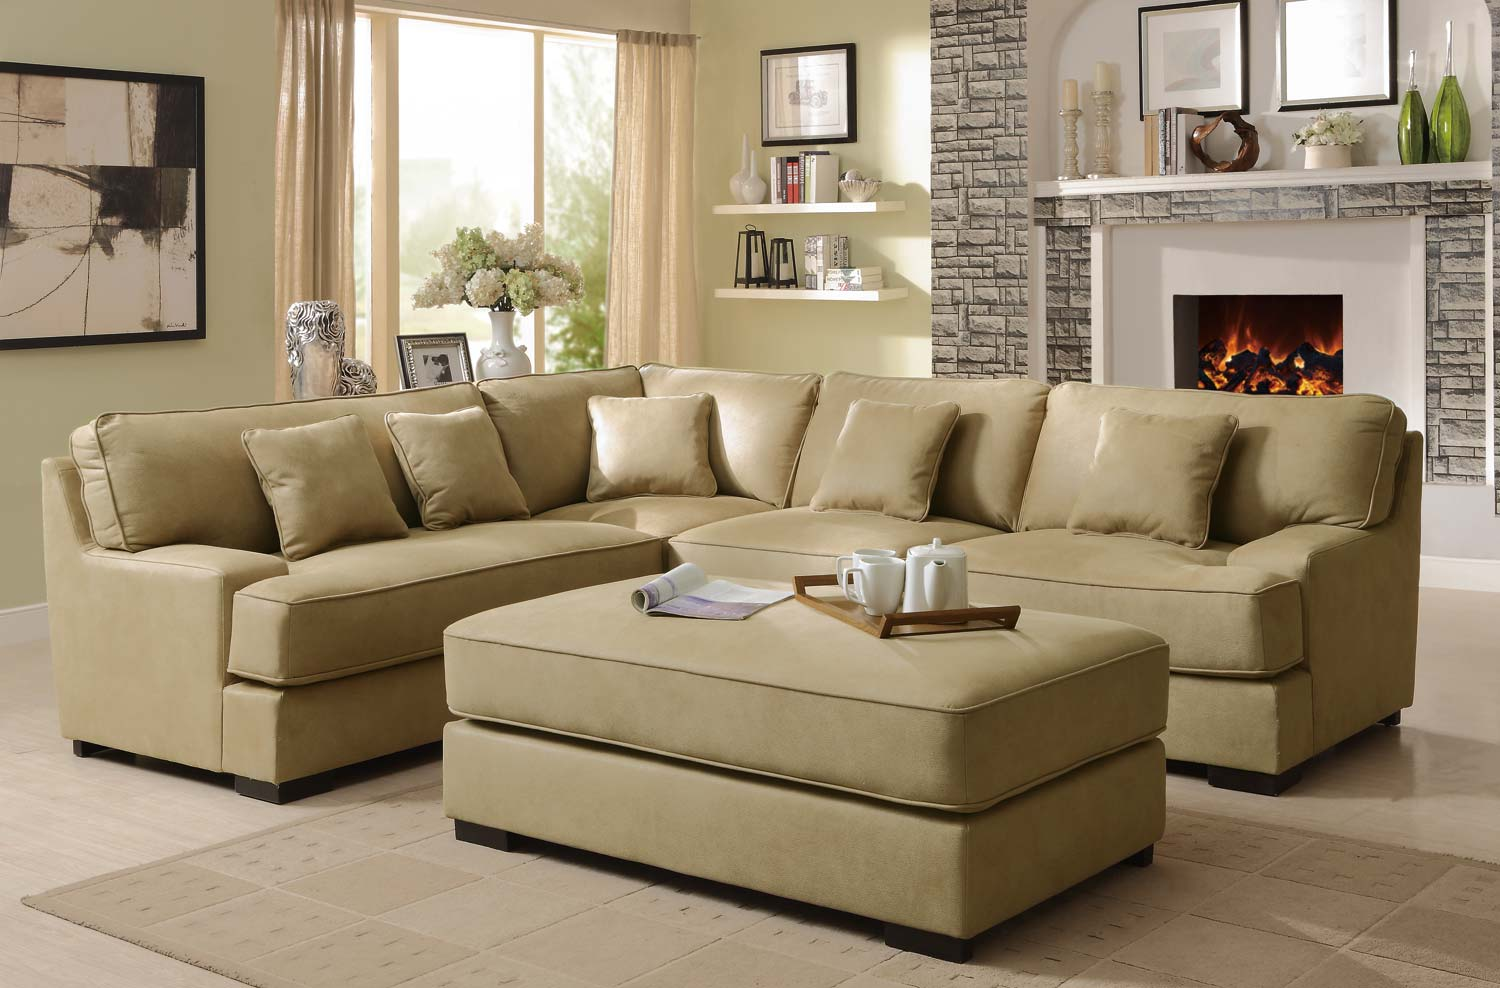 Lounge Couch Company Minnis Camel Fabric Sectional Las Vegas Furniture Store